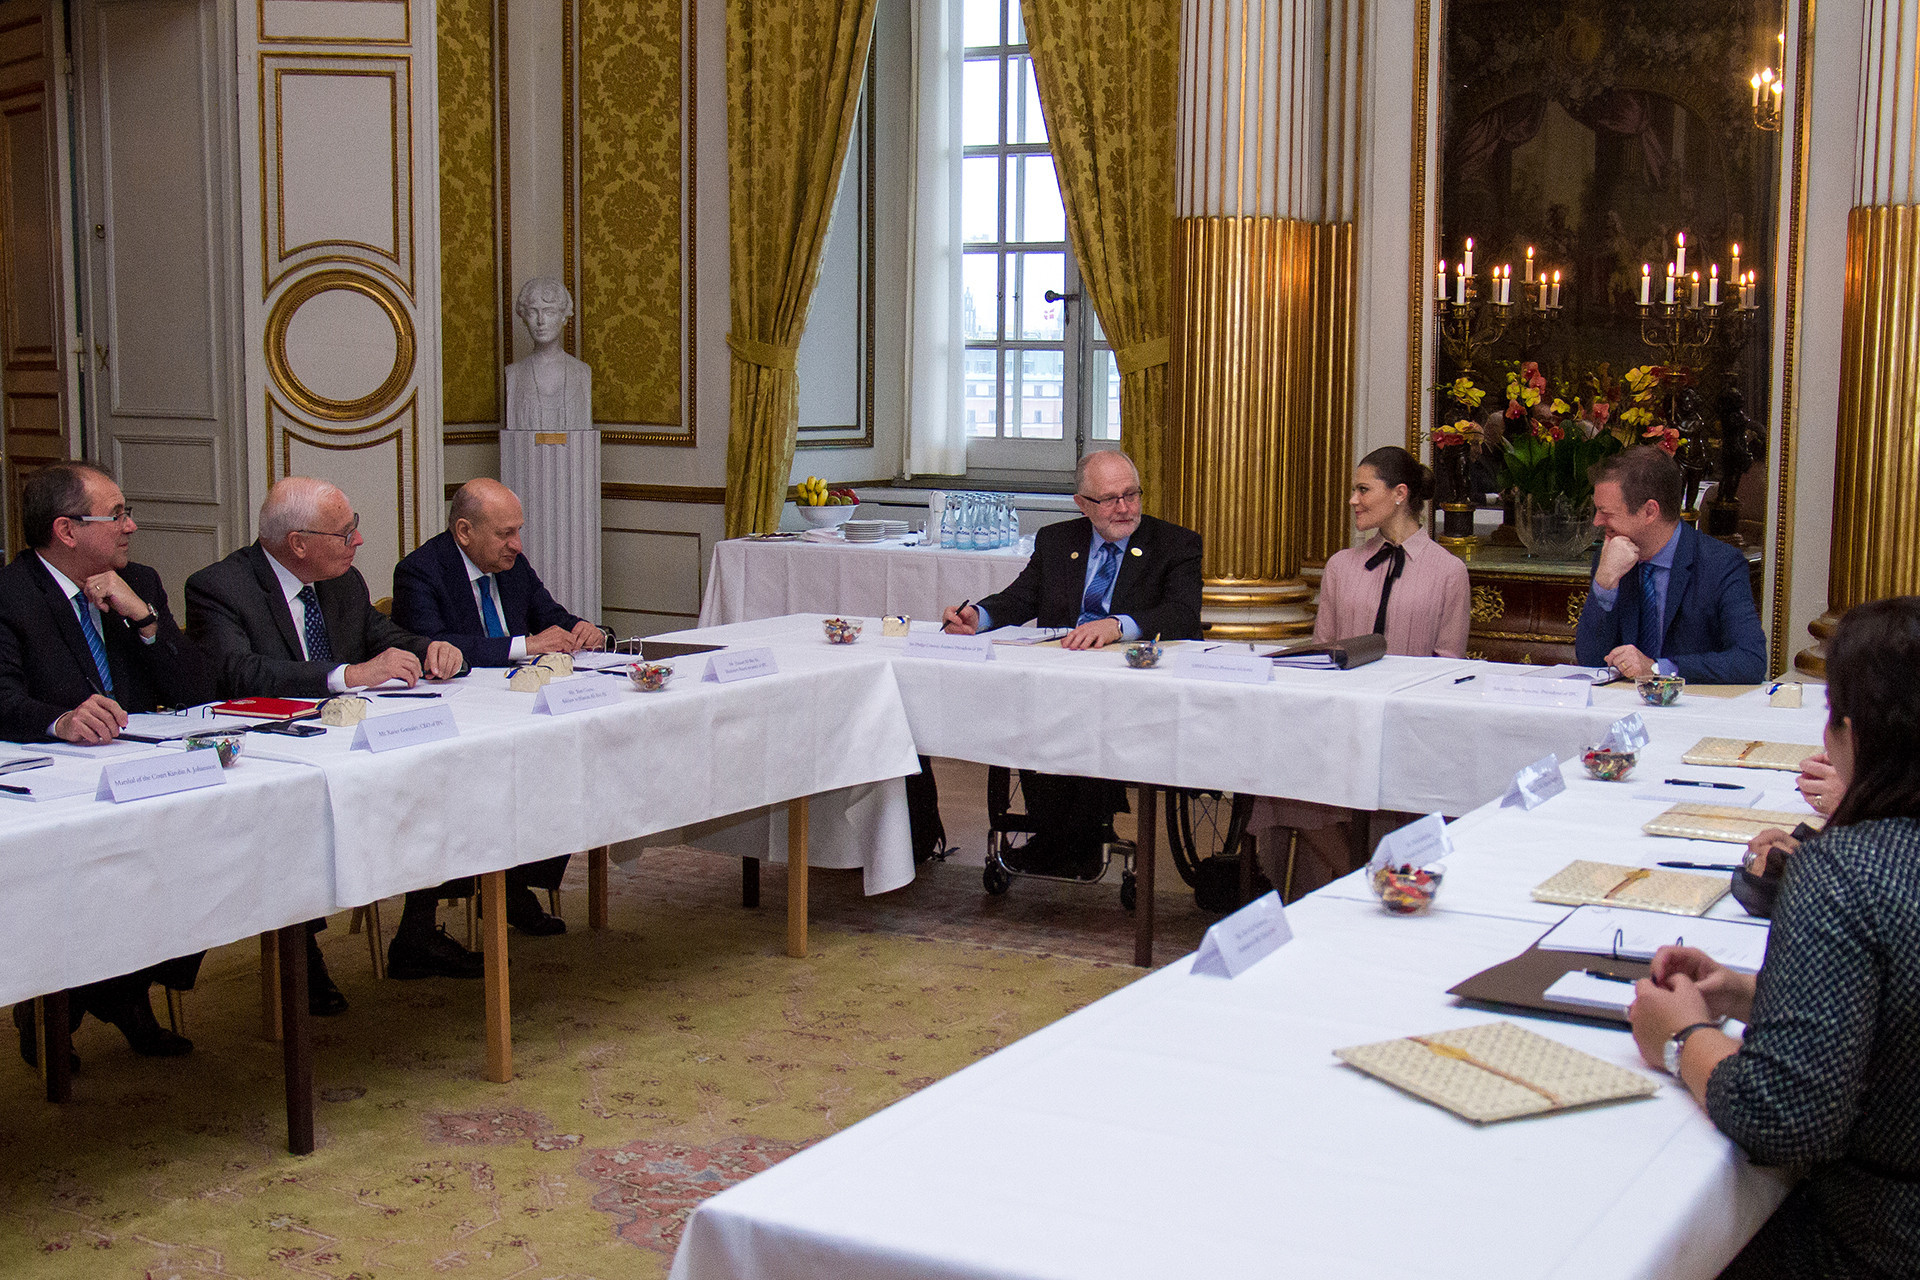 The biennial meeting of the Honorary Board of the International Paralympic Committee at the Royal Palace in Stockholm ©Royal Court, Sweden